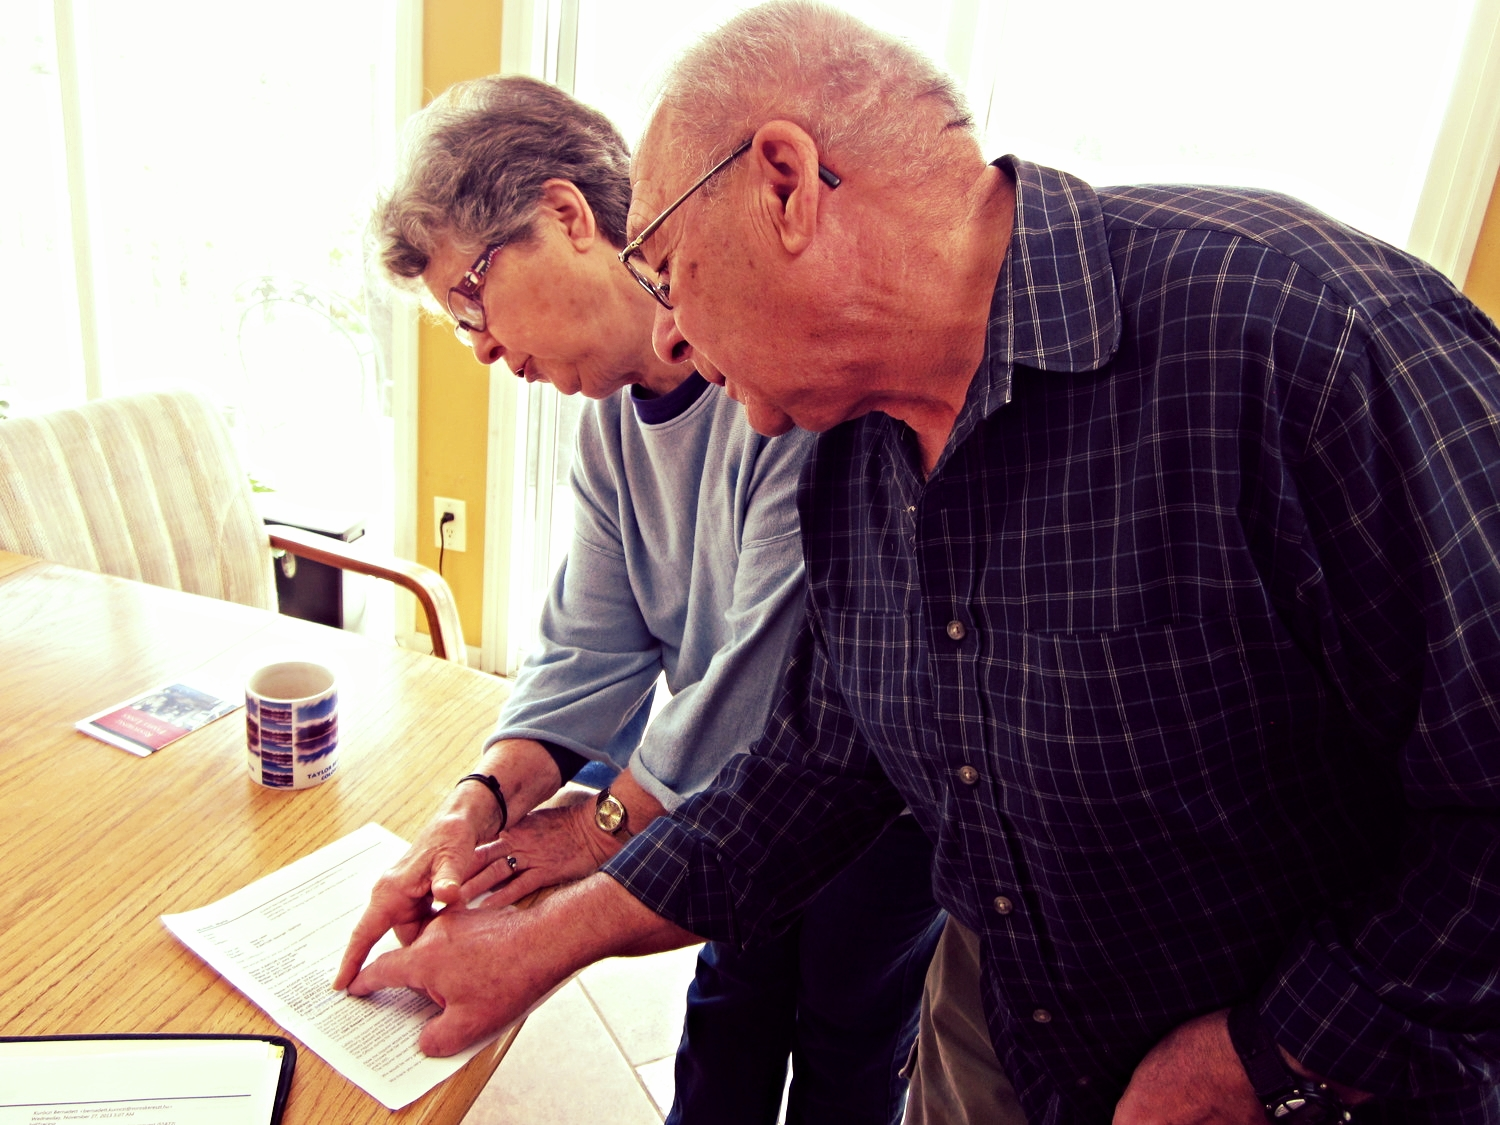 George and his wife Gretchen looking at their first message from George's niece, Karolyne.